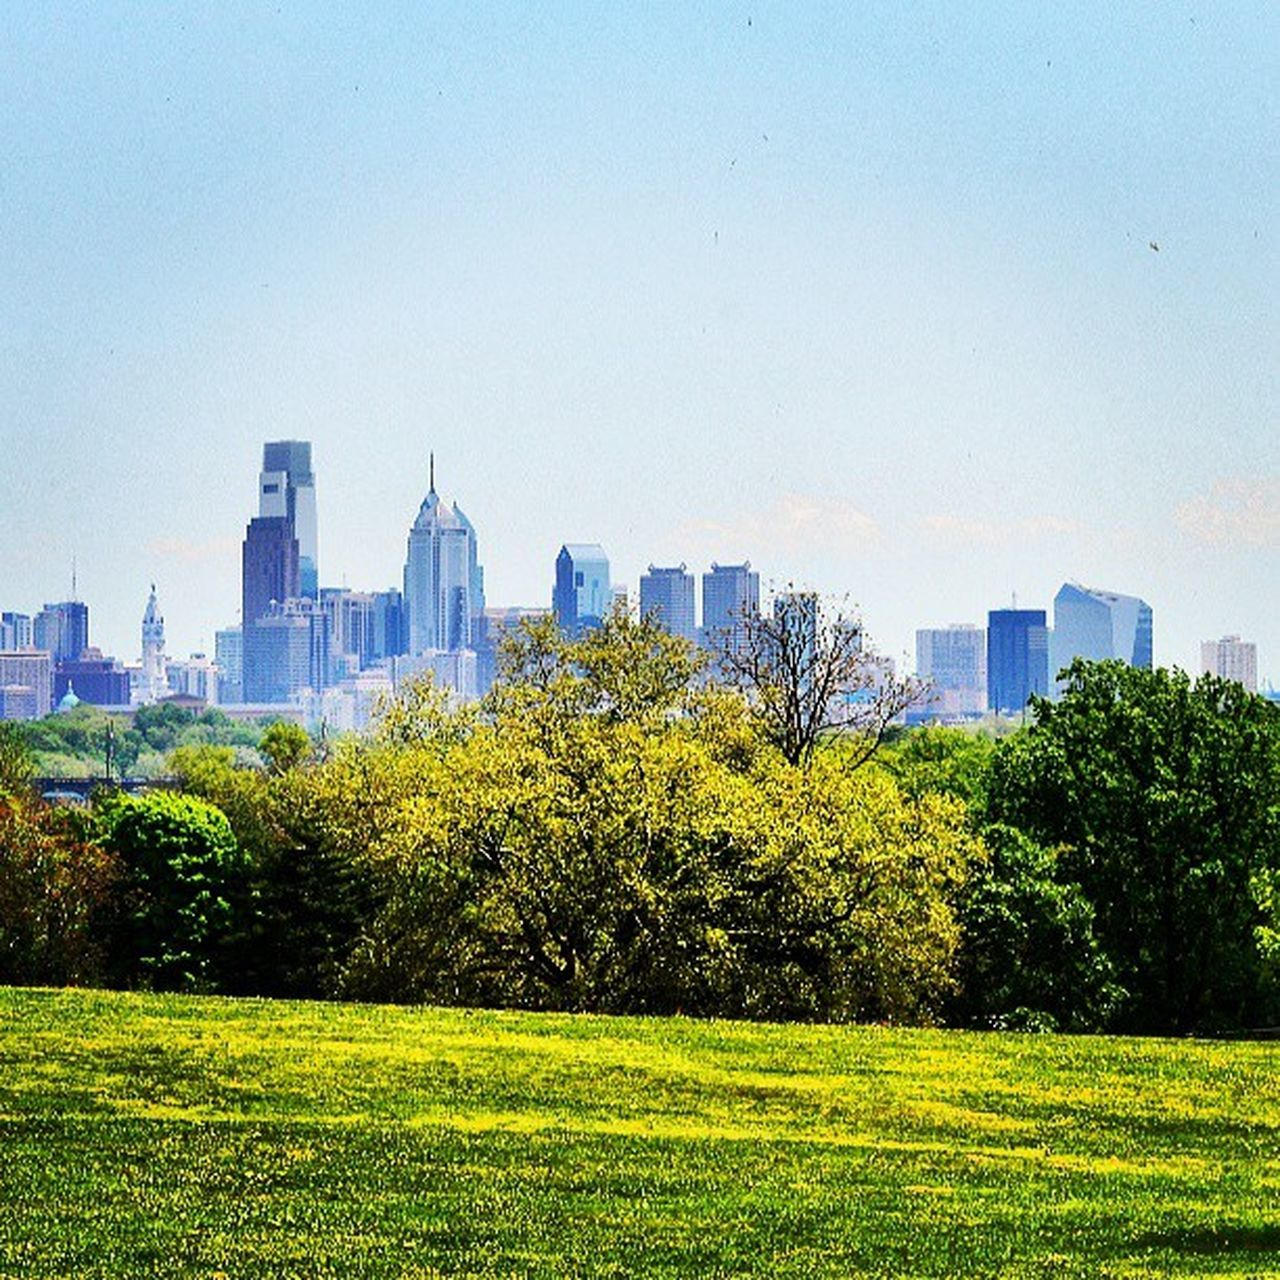 Igers_philly Phillygram Philly Philadelphia park trees skyline blueskies